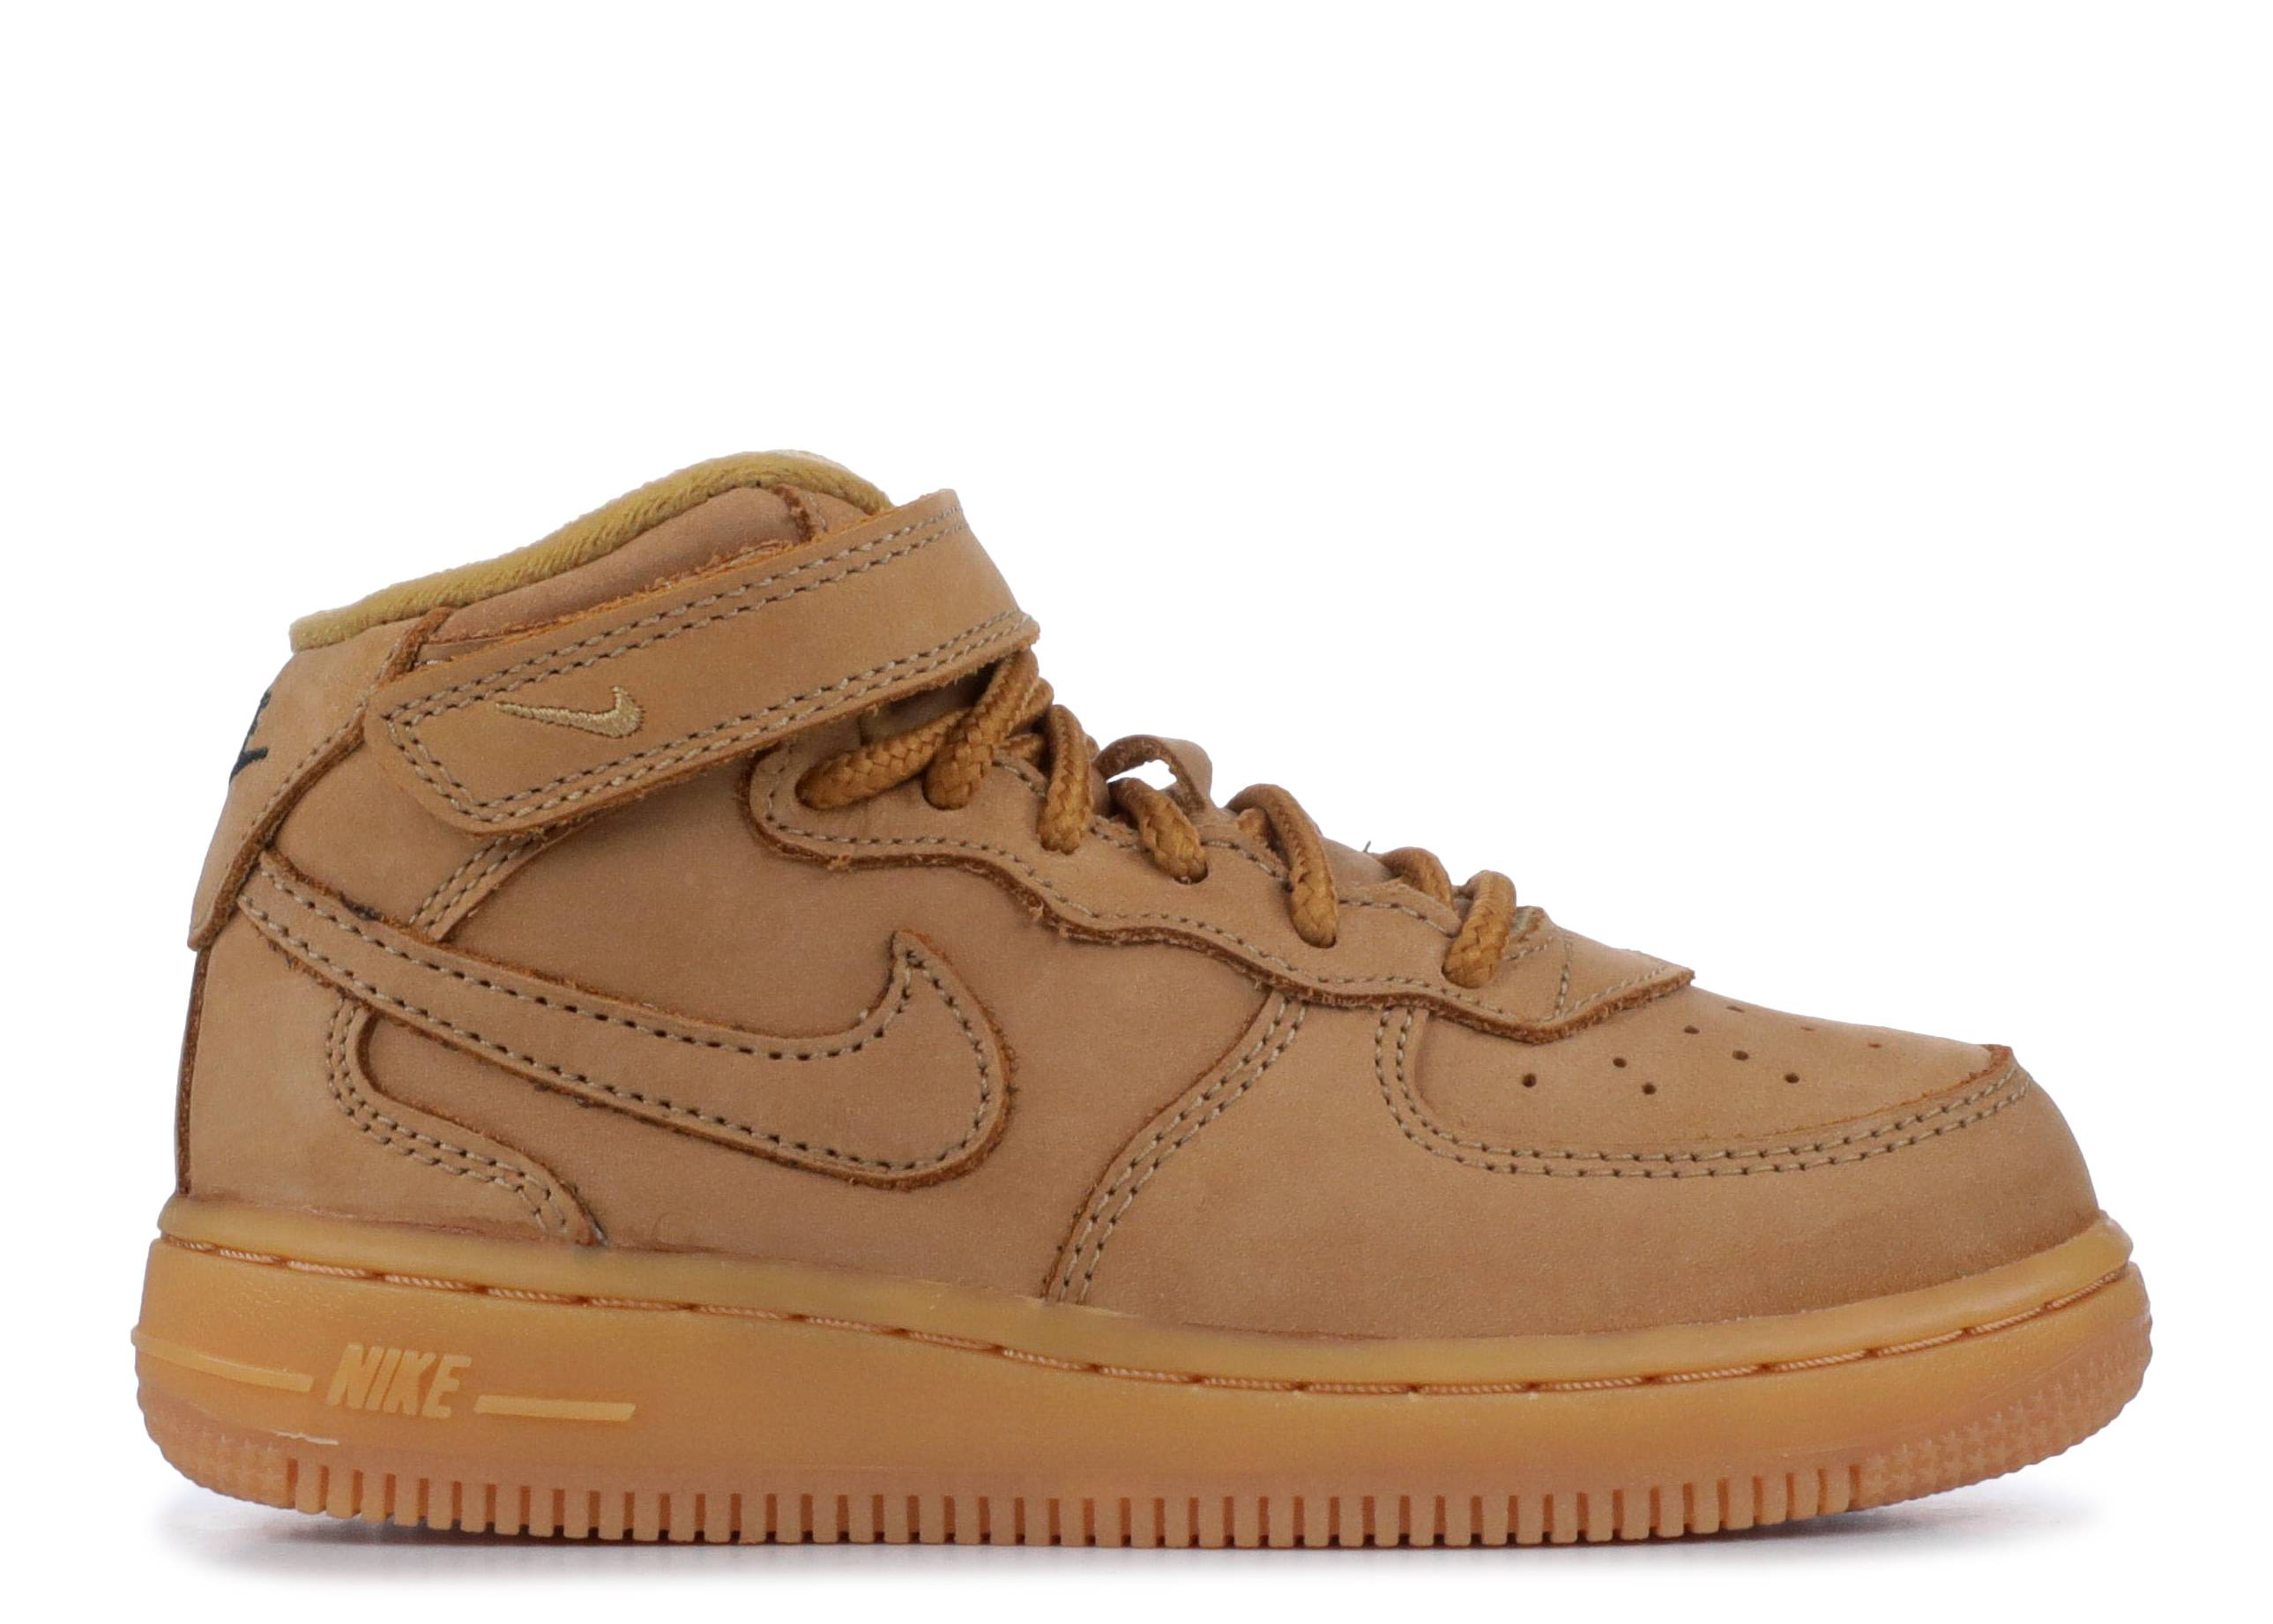 Nike Air Force 1 Mid '07 Wheat Flax Sz 9